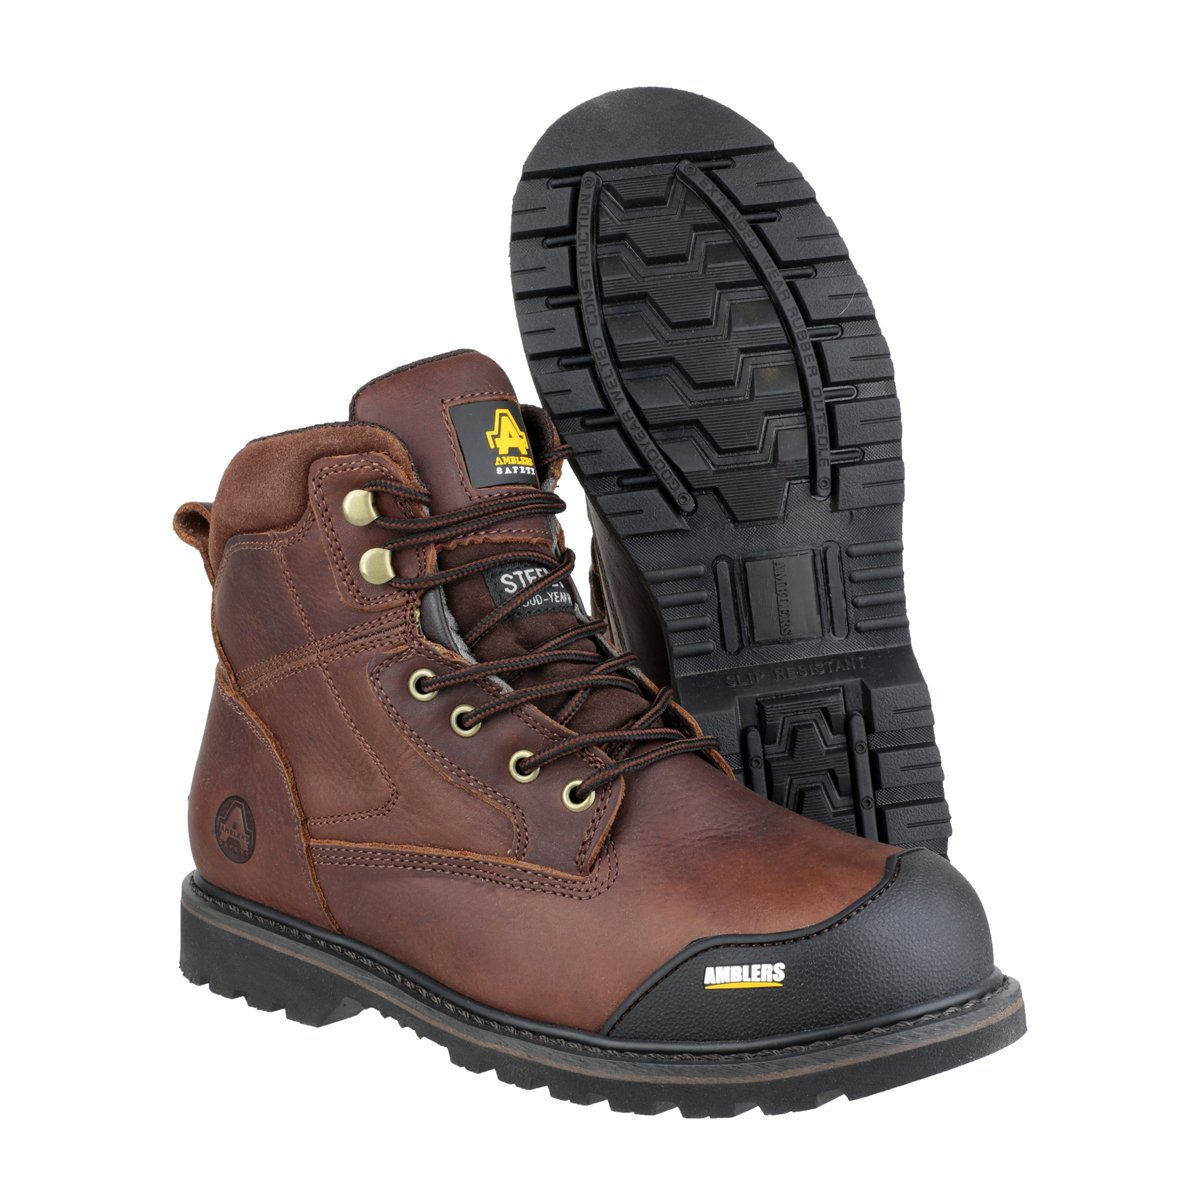 Amblers Safety Mens FS167 Leather Safety Boots Brown